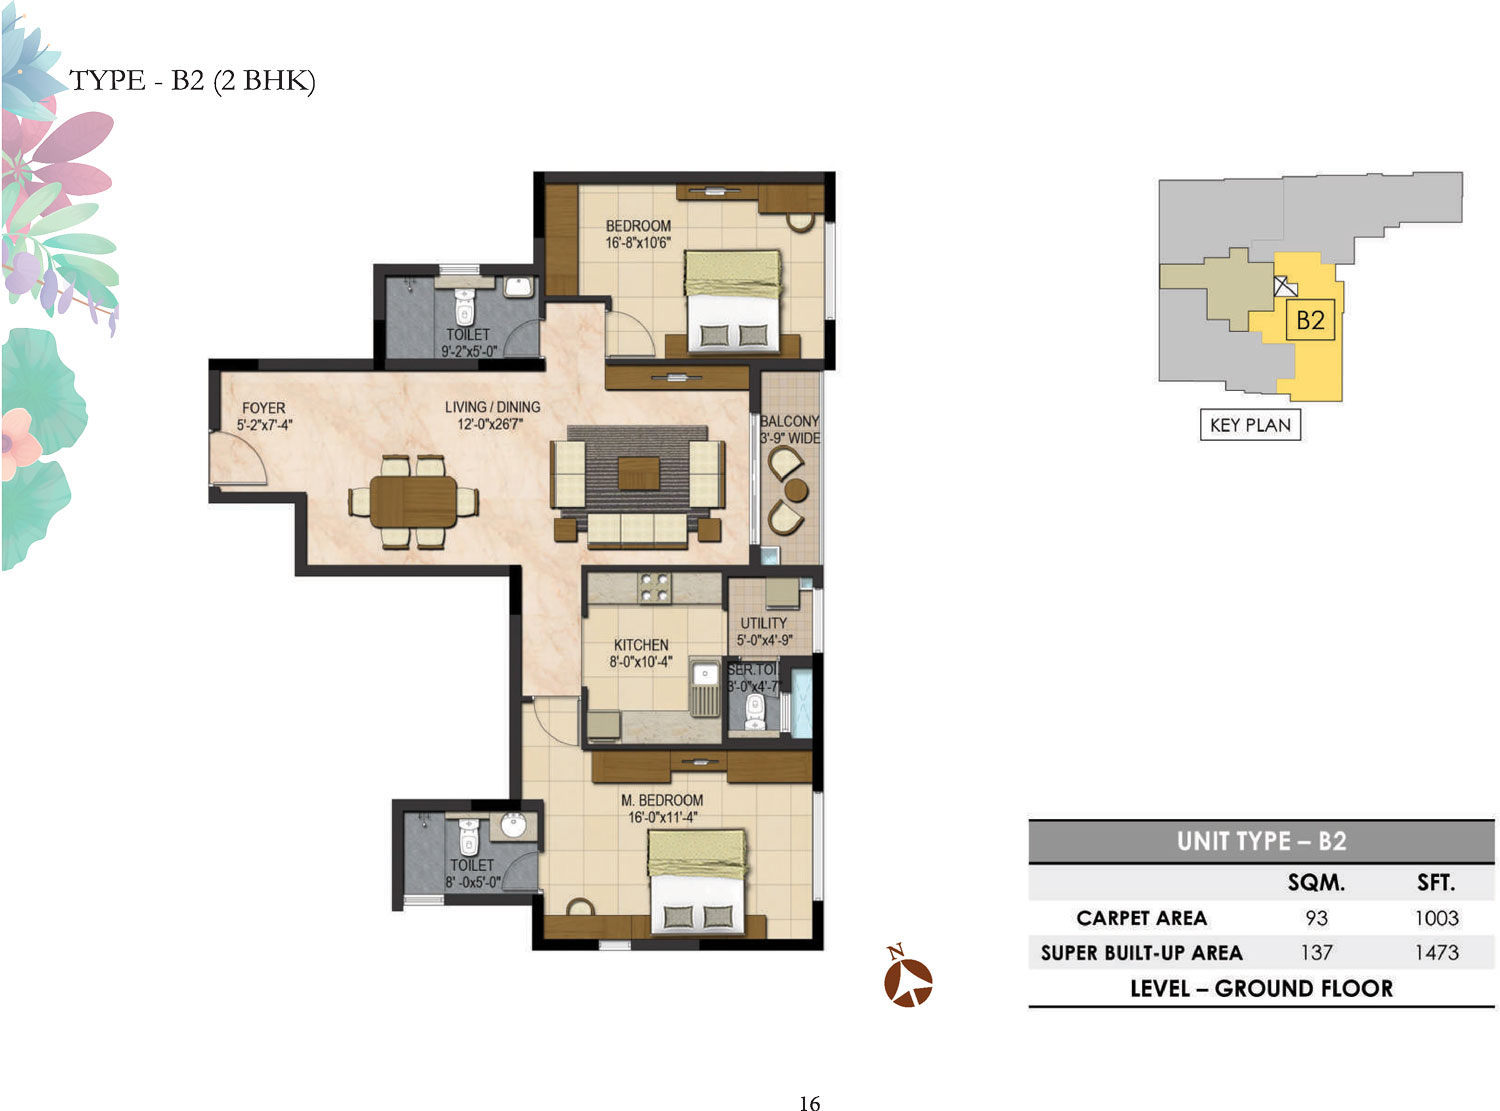 Type B2 - 2 Bed - 1473 Sq Ft